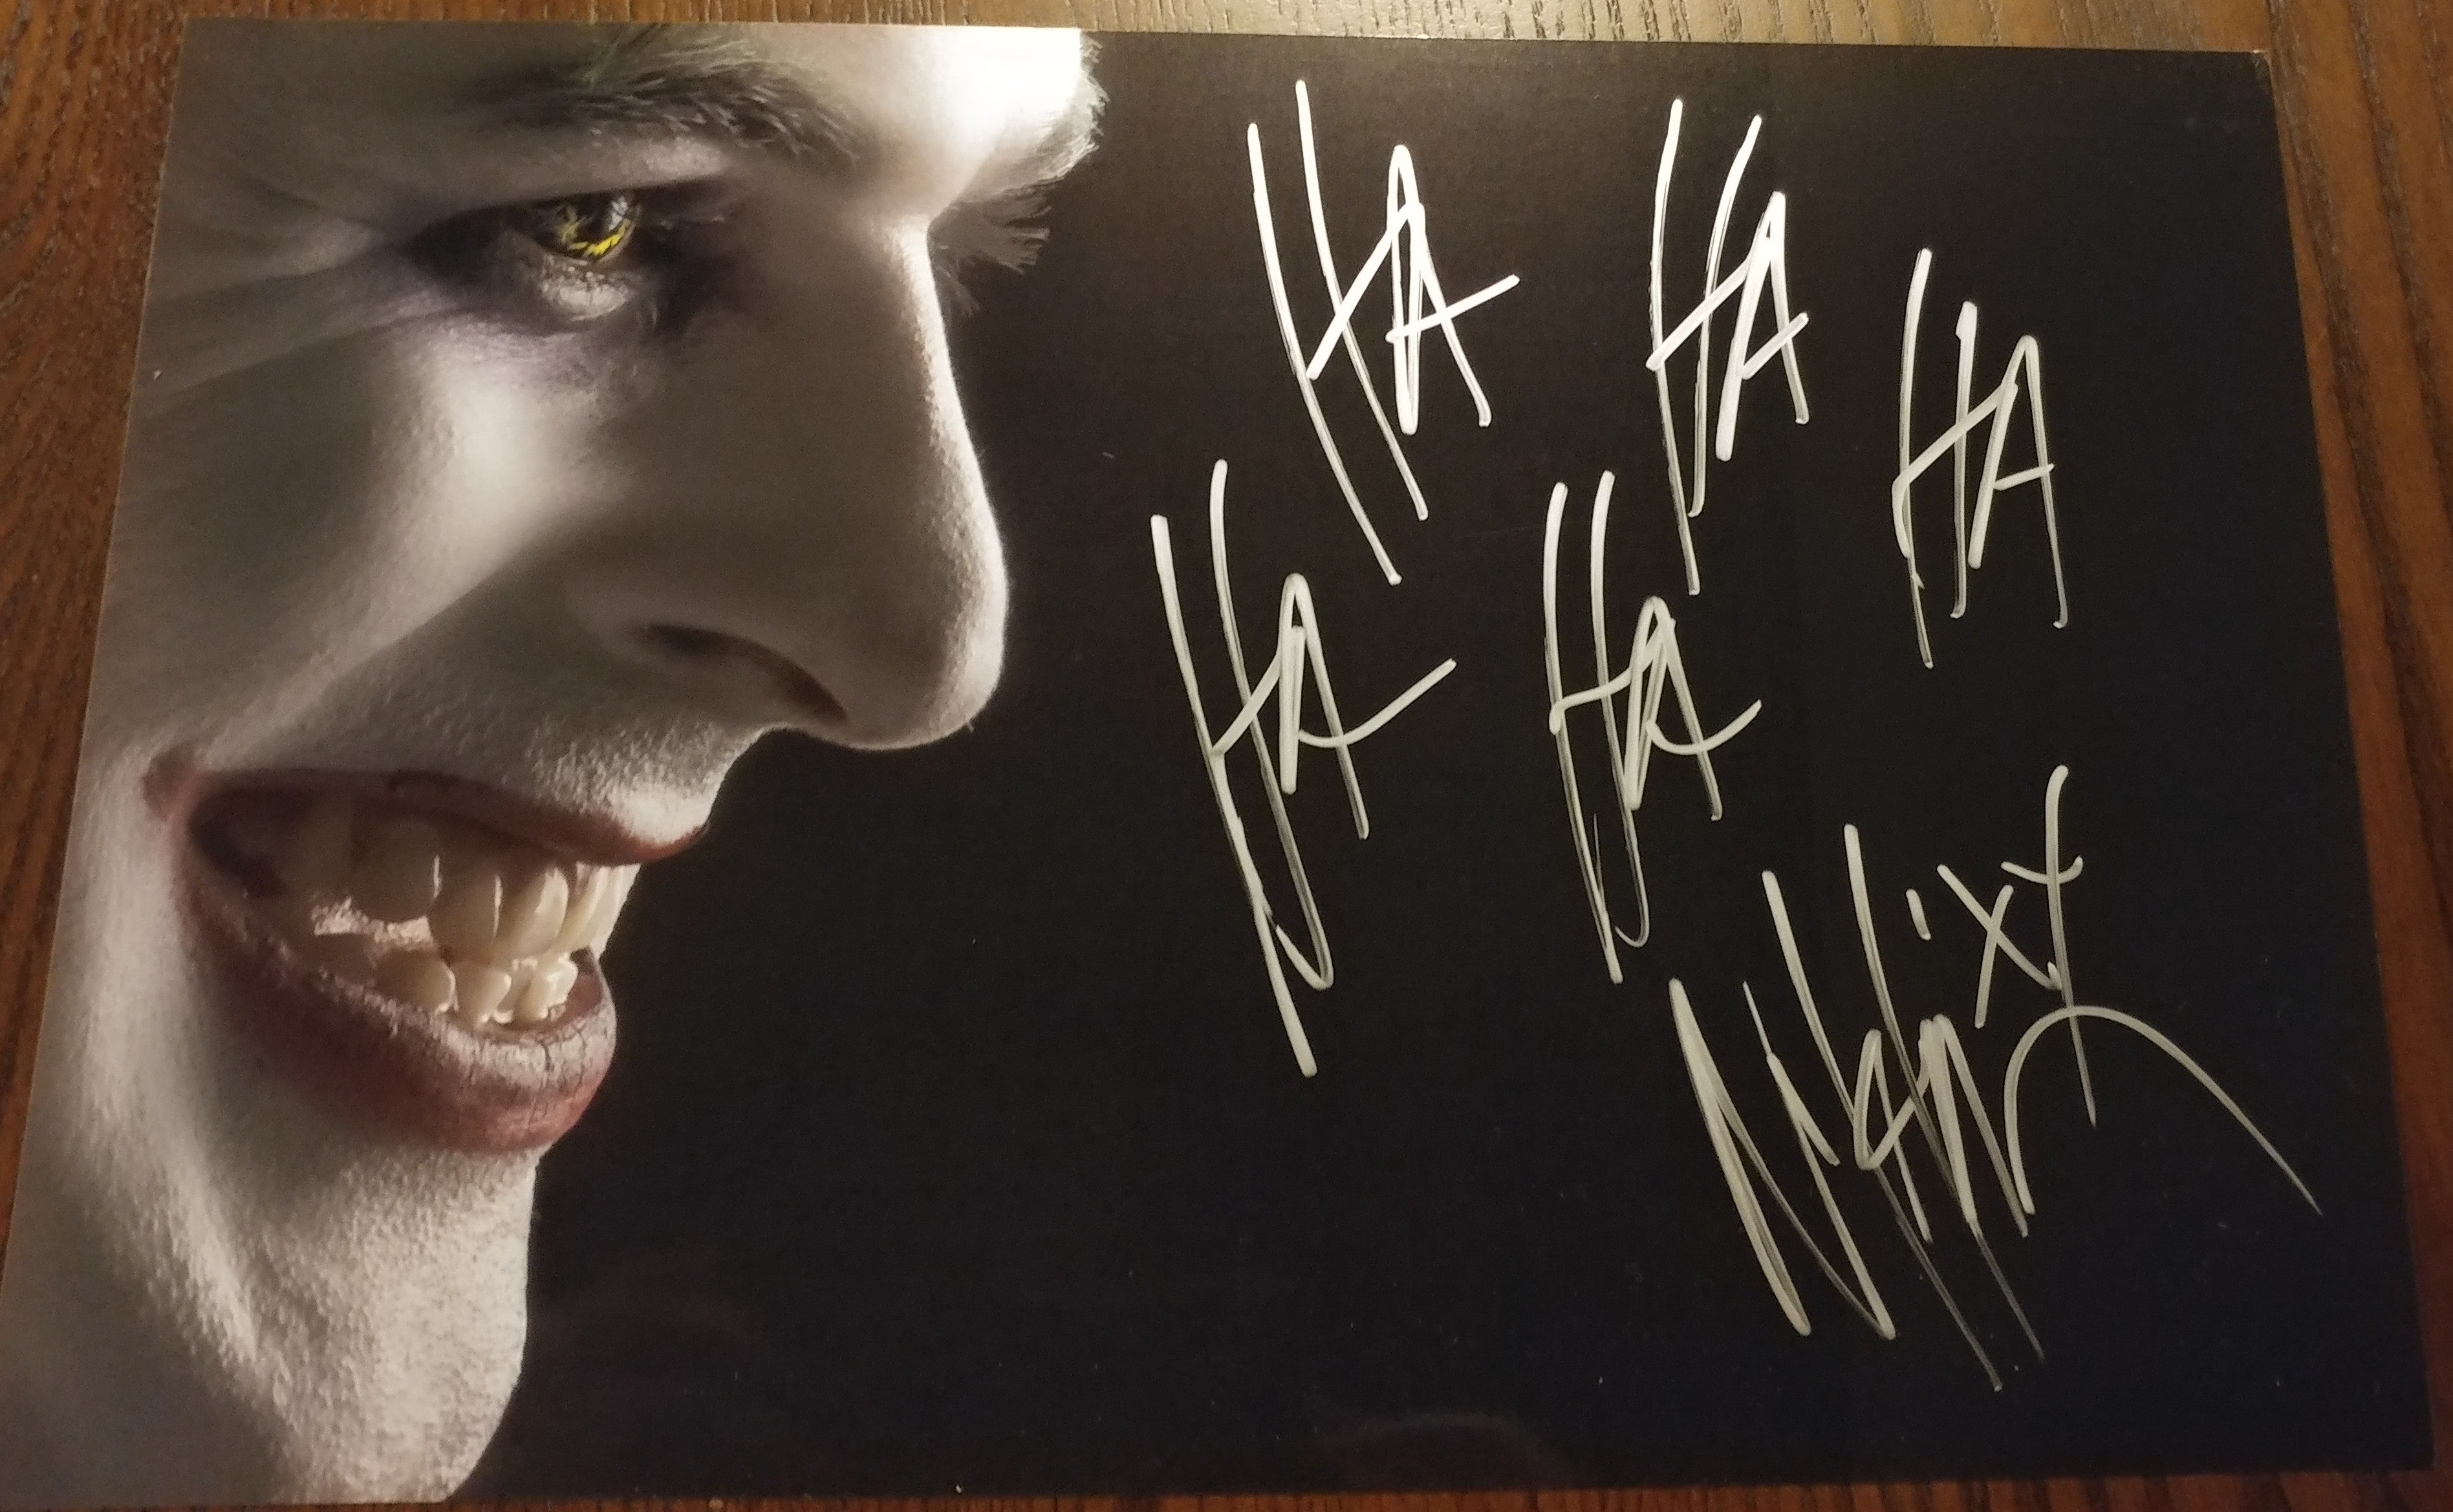 Nikki Misery - Joker - Dark Smile signed 8x12 (damaged)